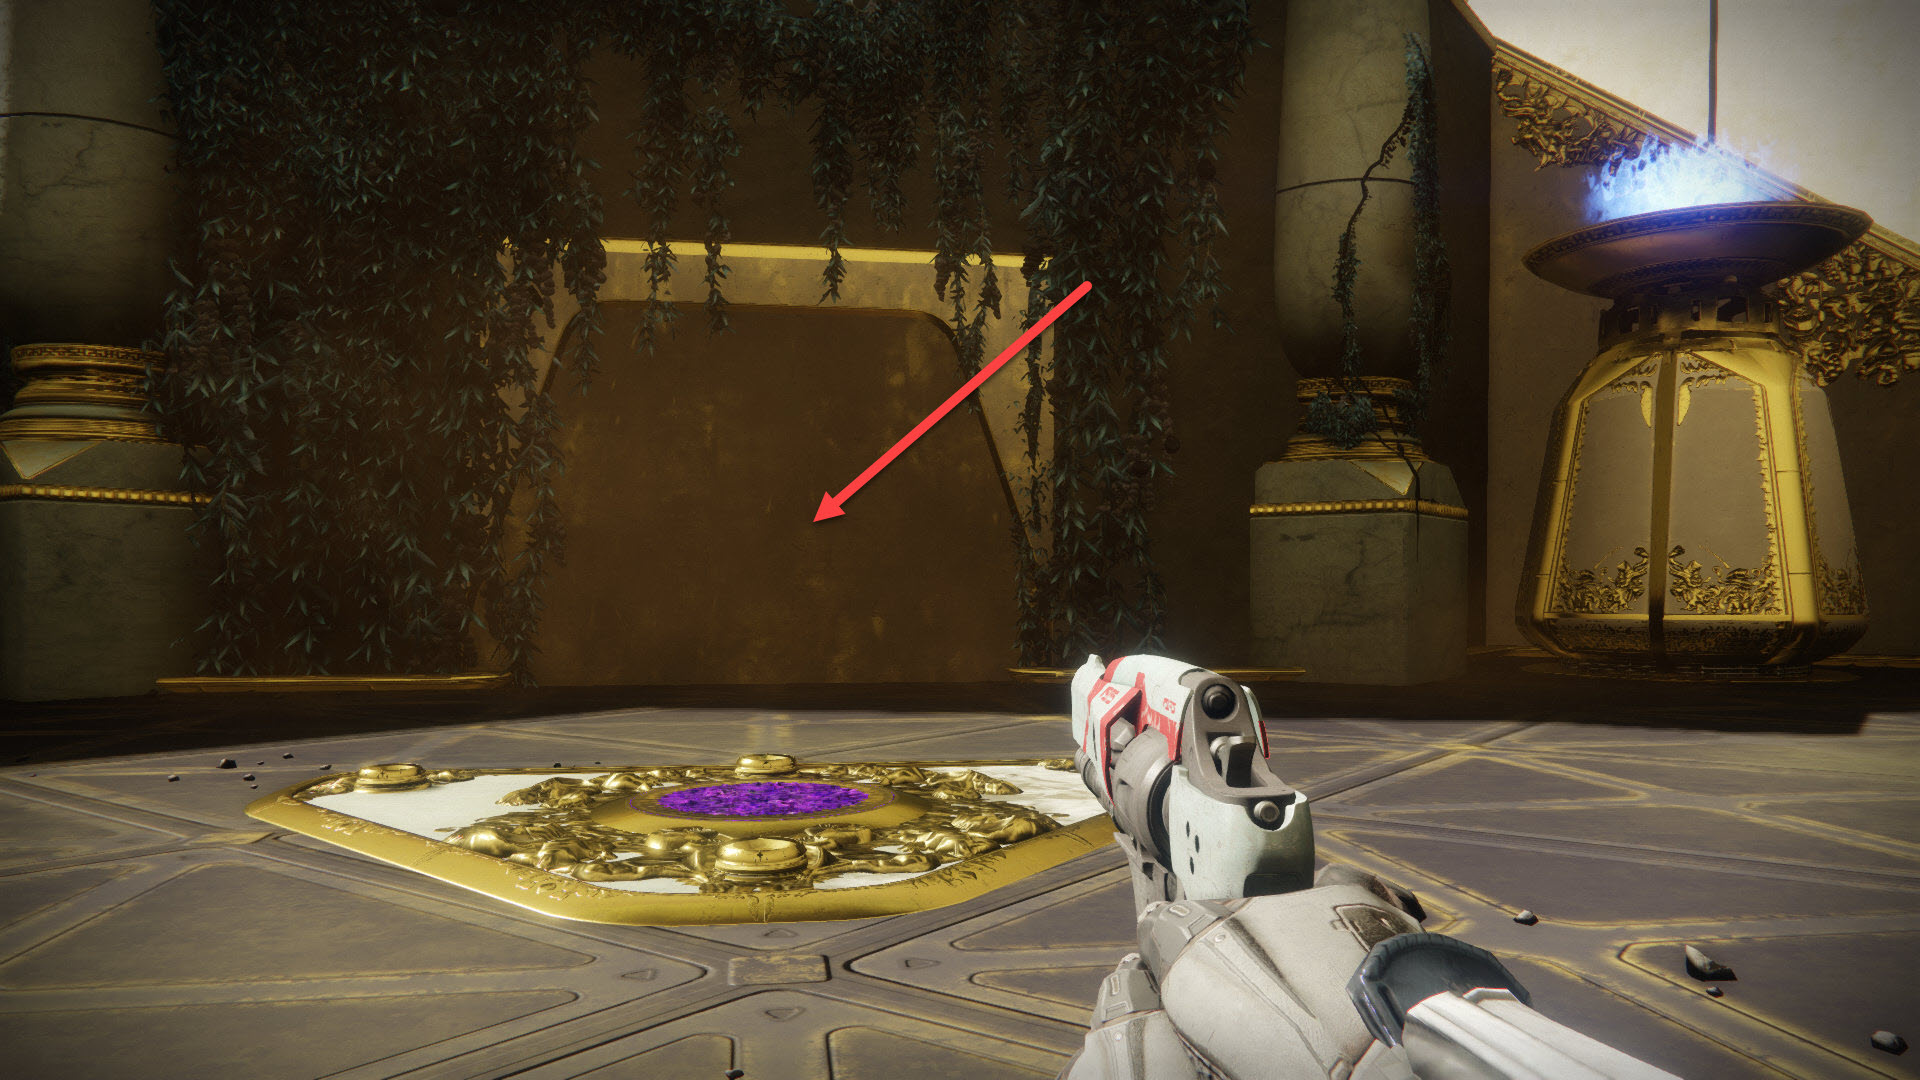 Destiny-2-Leviathan-Underbelly-Plates-Removable-Wall